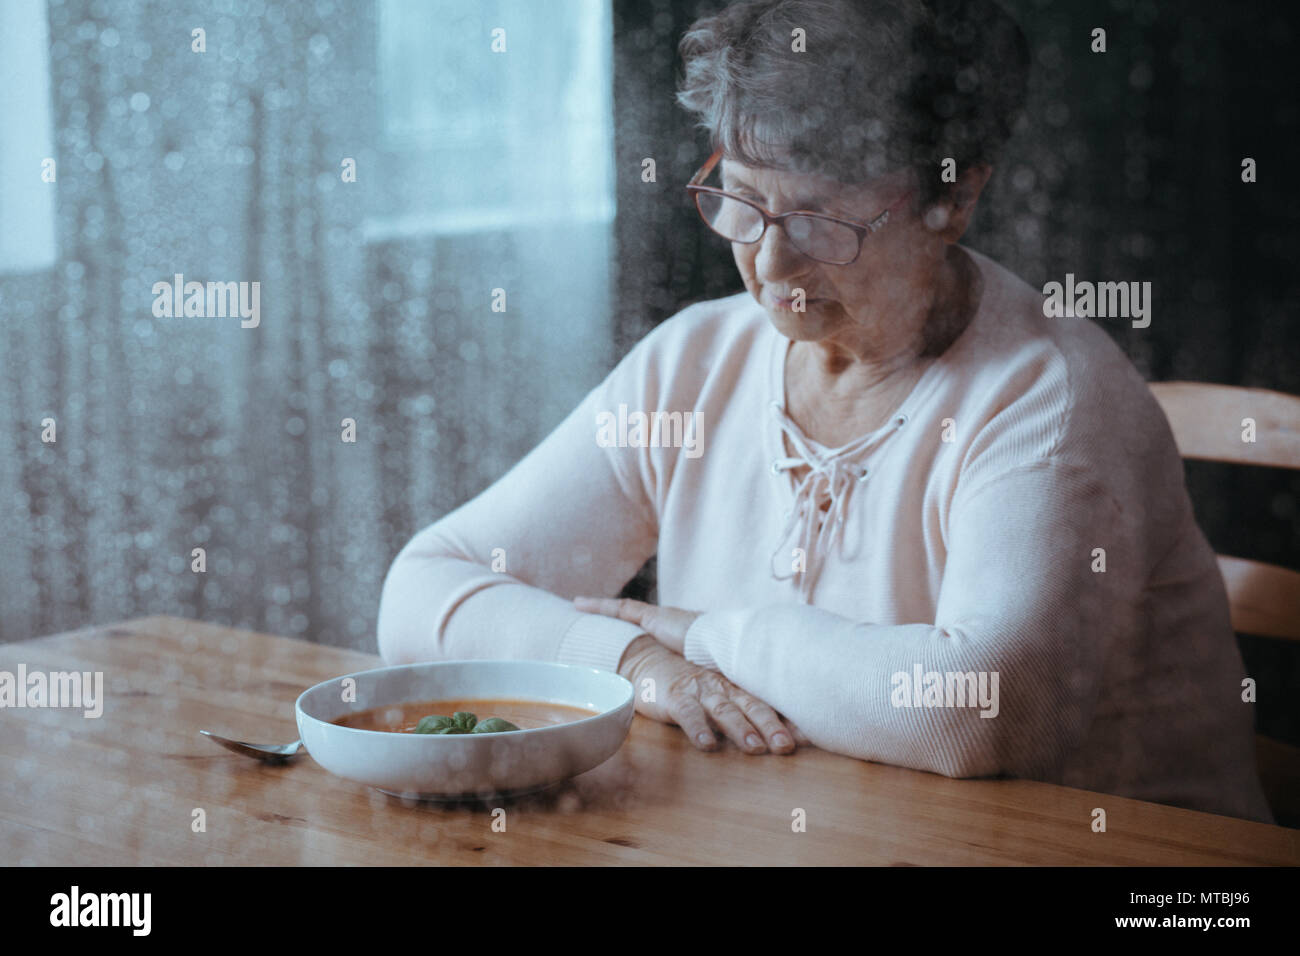 Sad, senior woman having lack of appetite - Stock Image